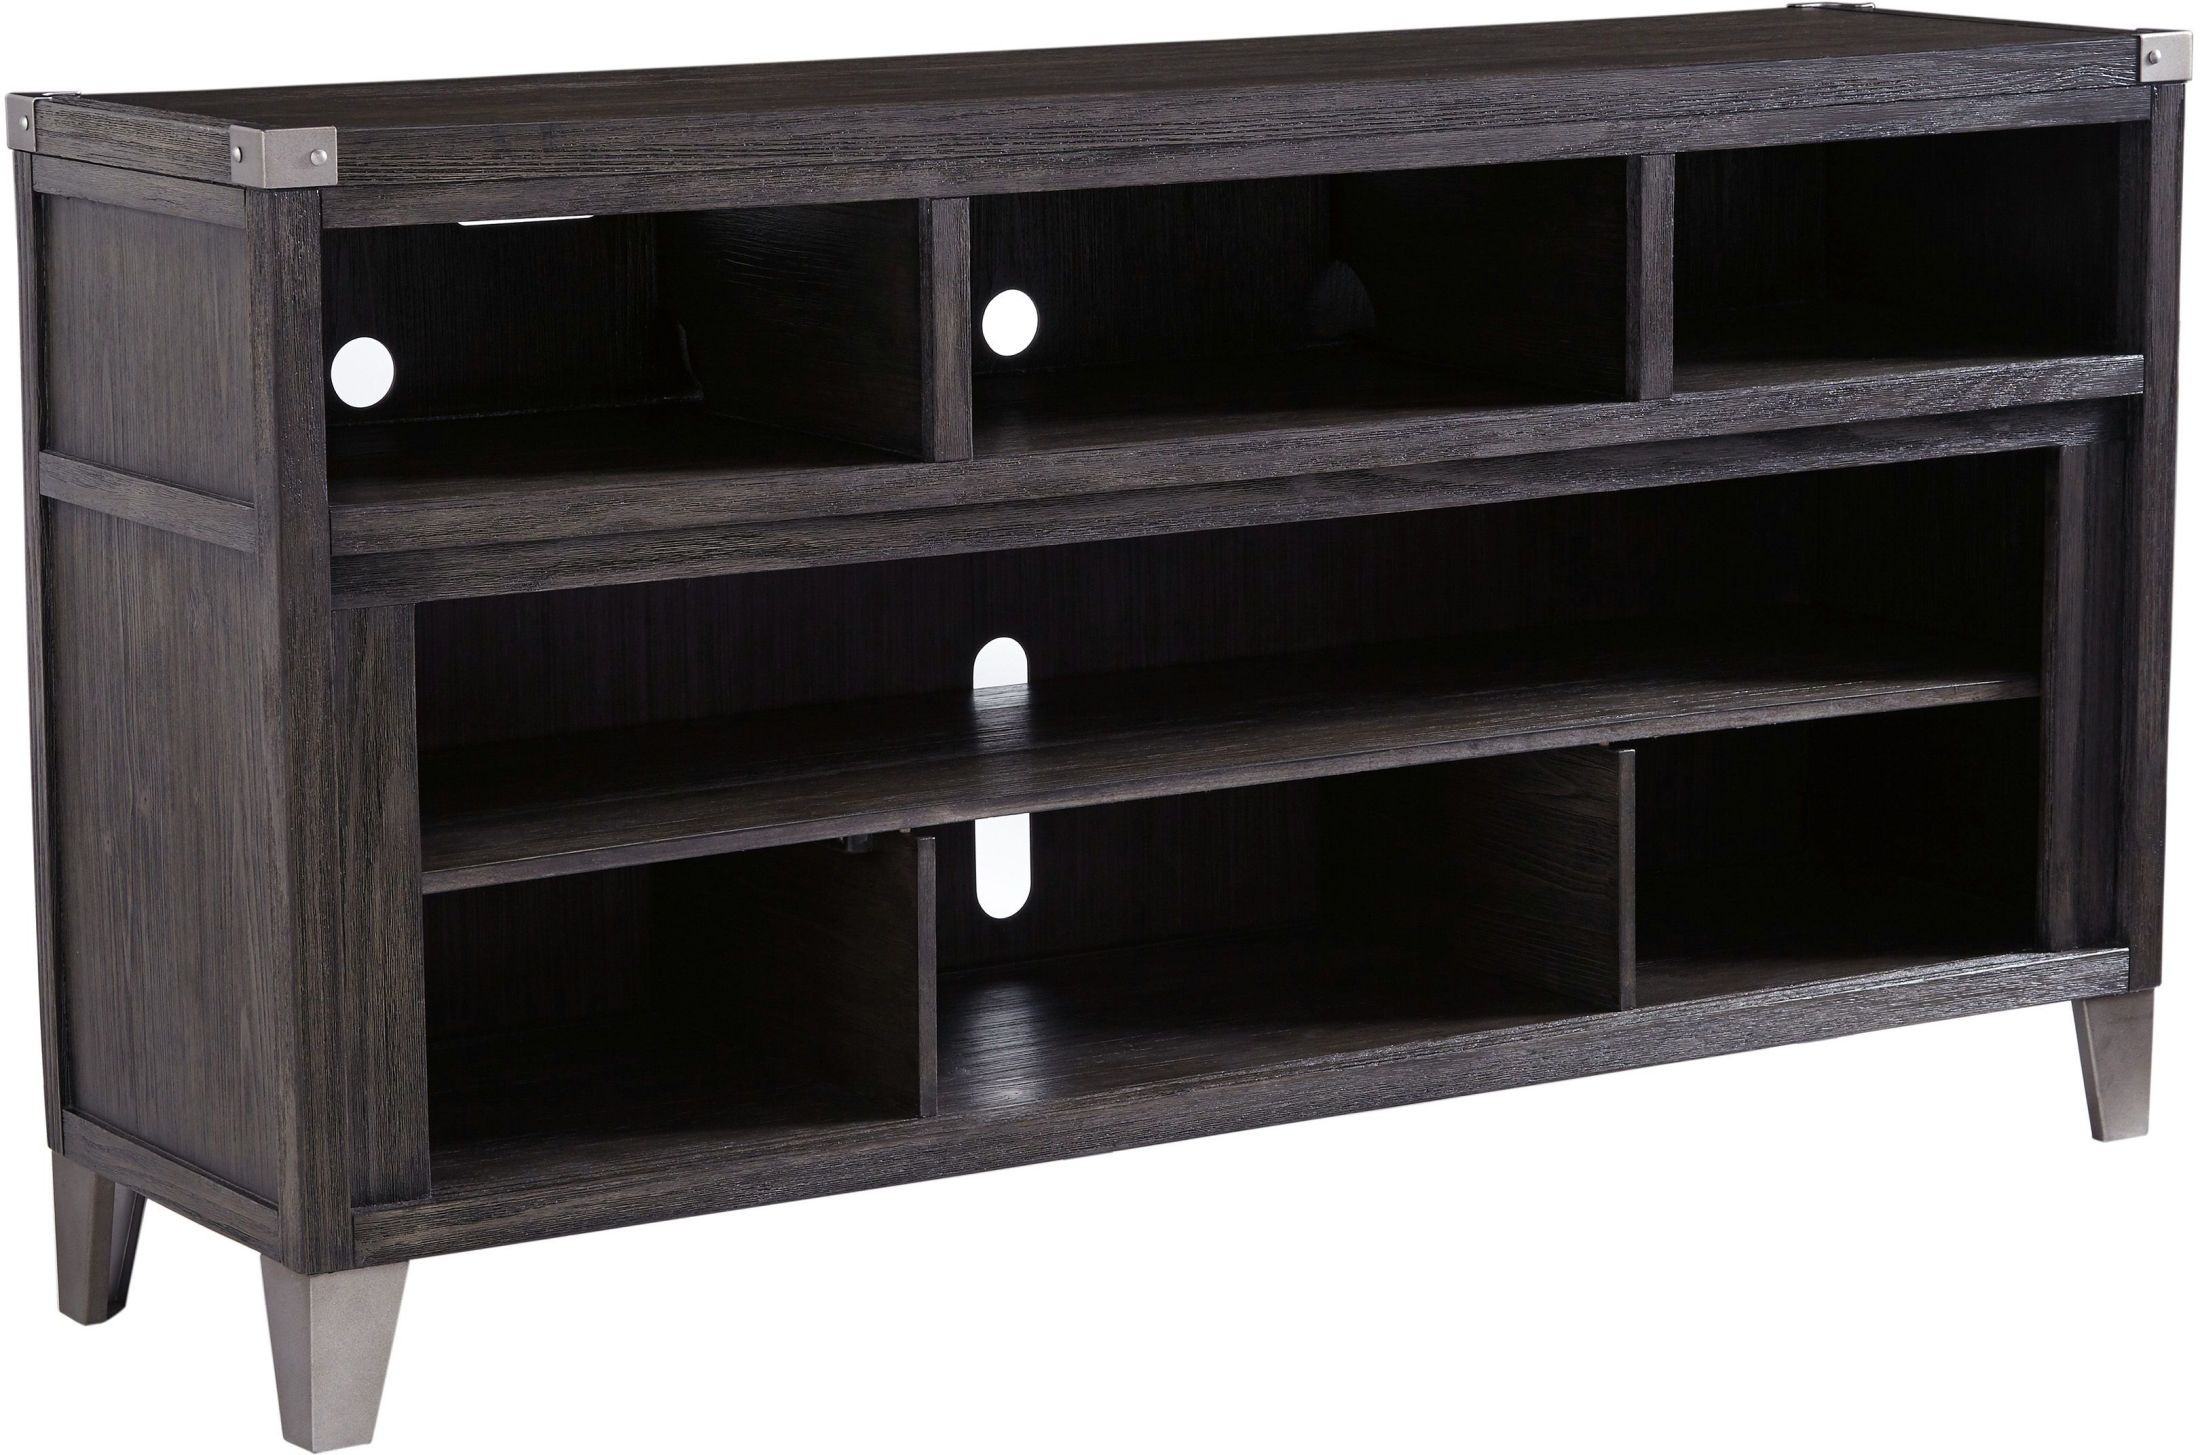 Todoe Gray Lg Tv Stand From Ashley | Coleman Furniture Within Vista 68 Inch Tv Stands (View 7 of 30)